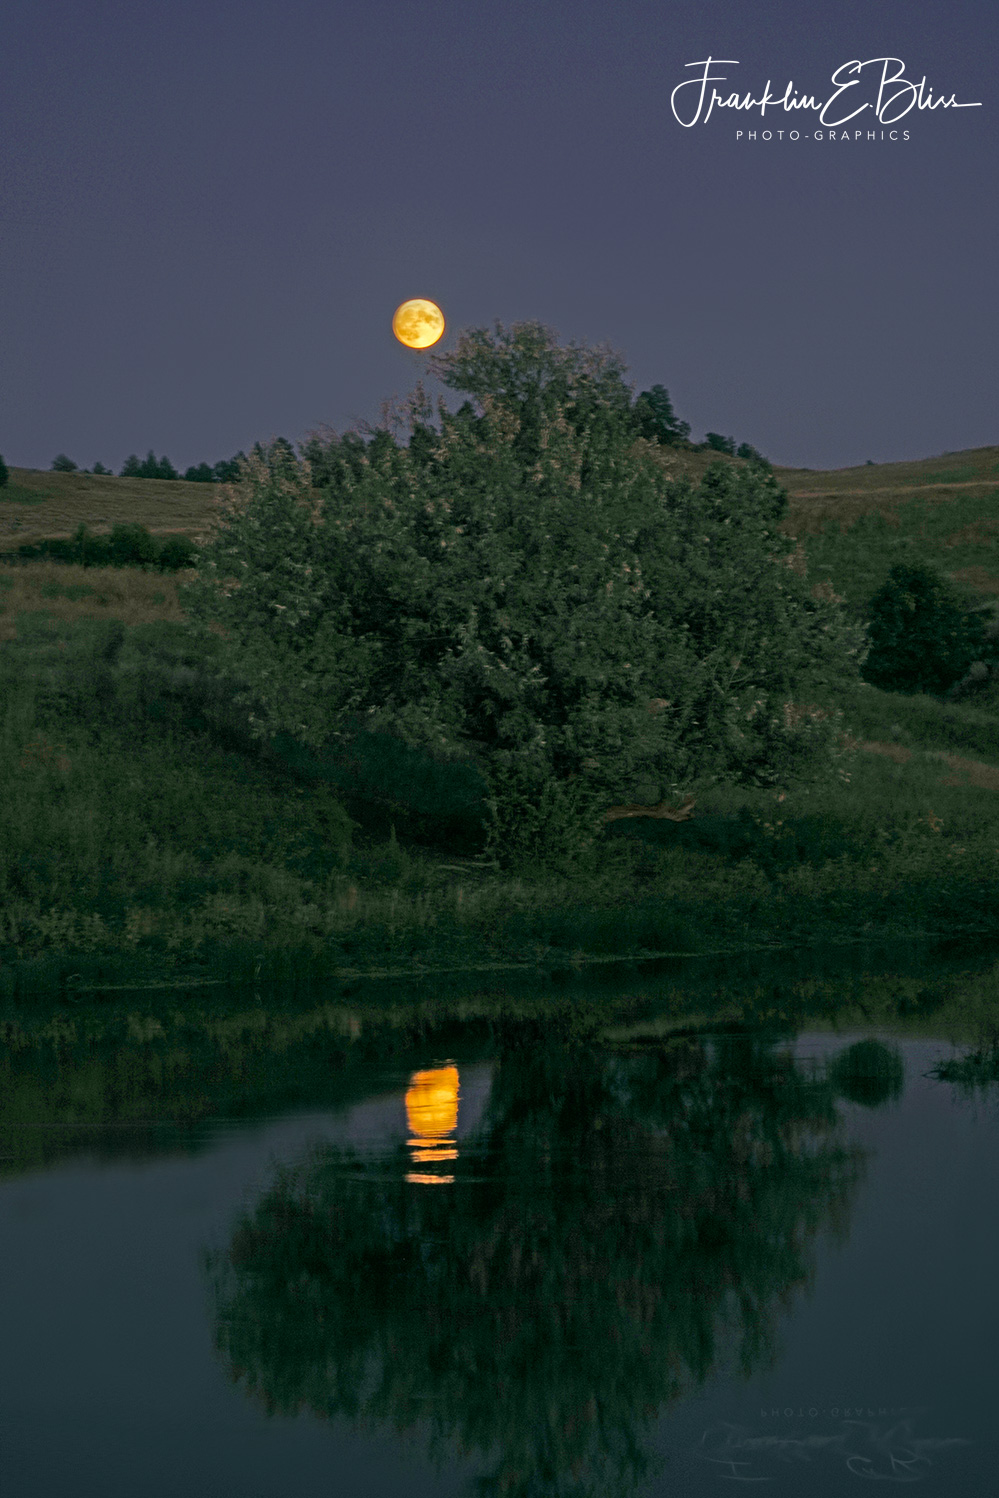 Reflections: Full Moon over Wetlands